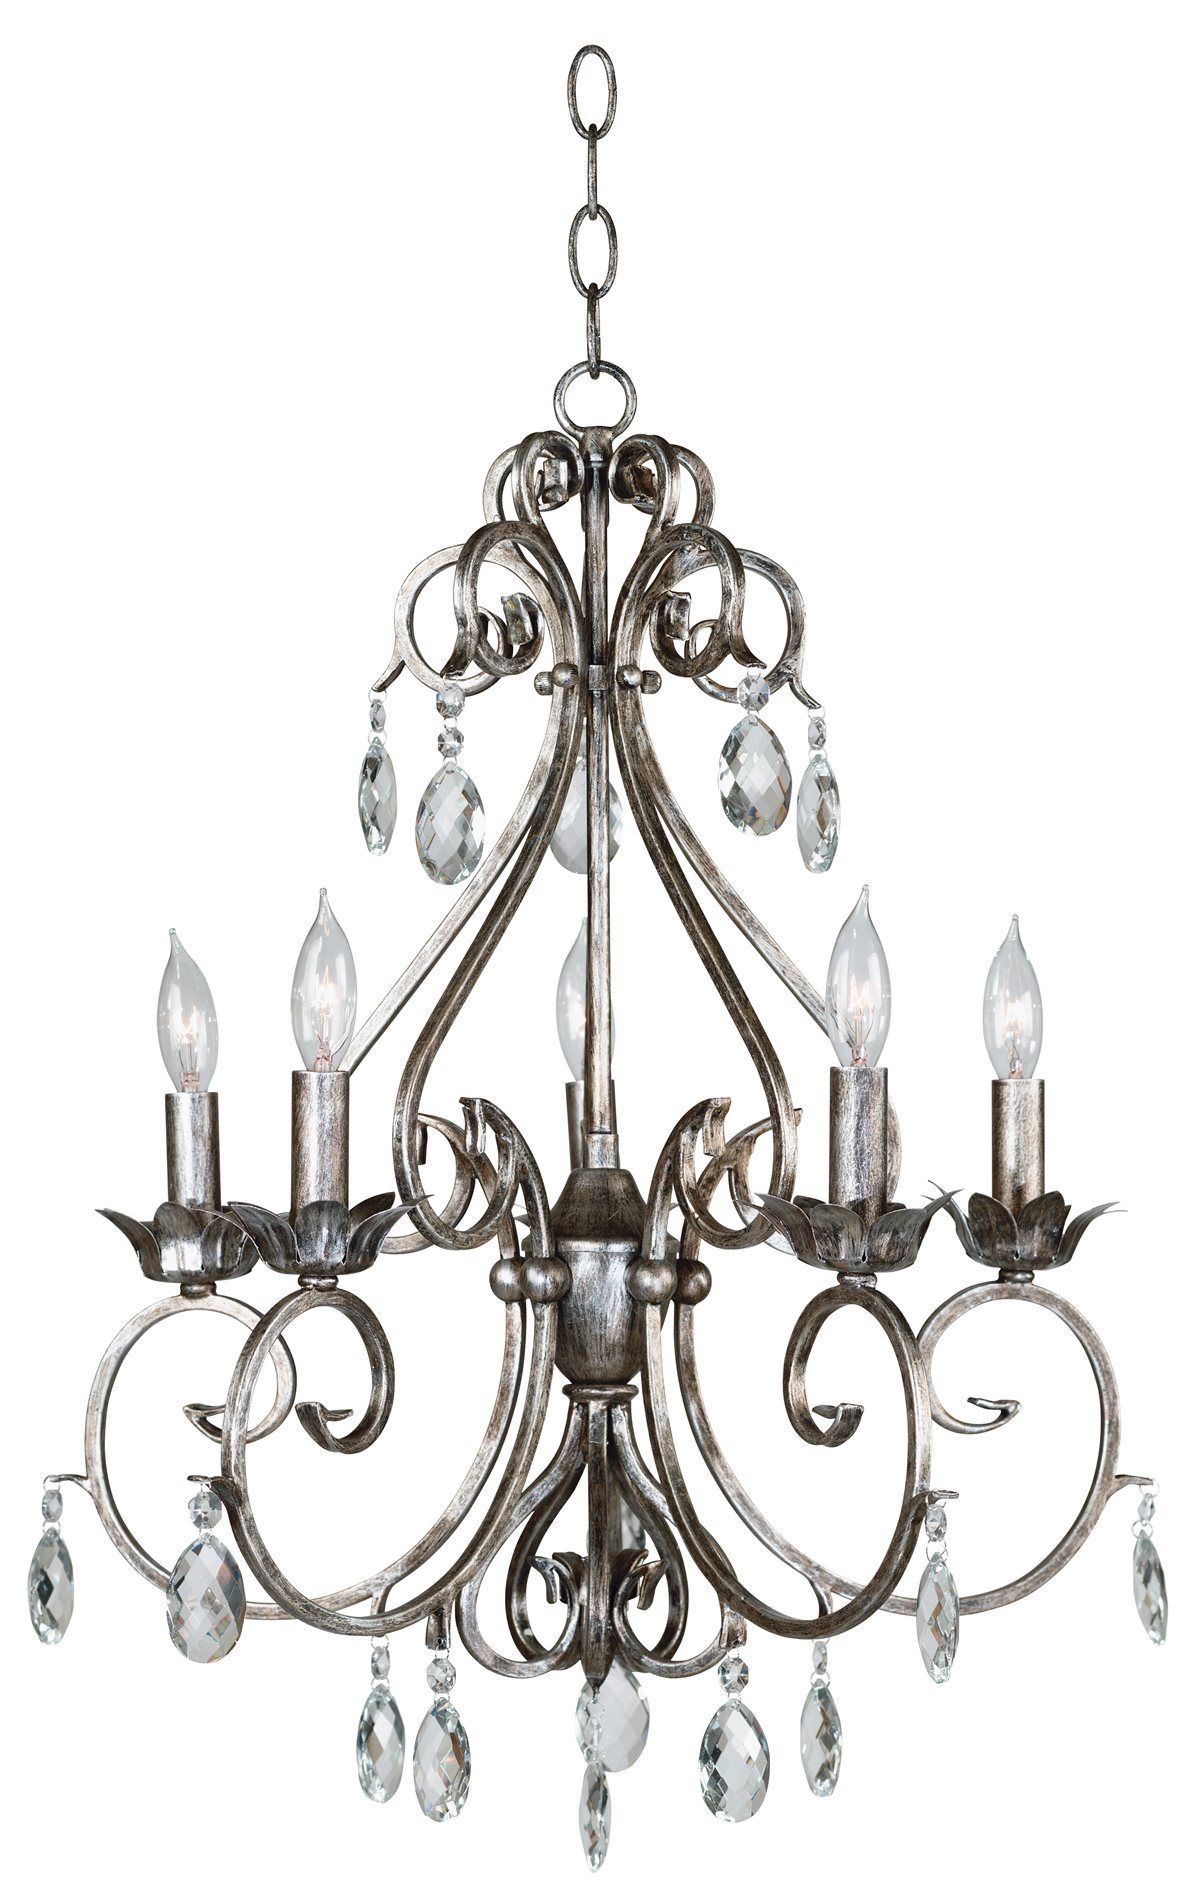 South shore decorating kenroy 91345ws antoinette traditional south shore decorating kenroy 91345ws antoinette traditional chandelier kr 91345 ws arubaitofo Image collections